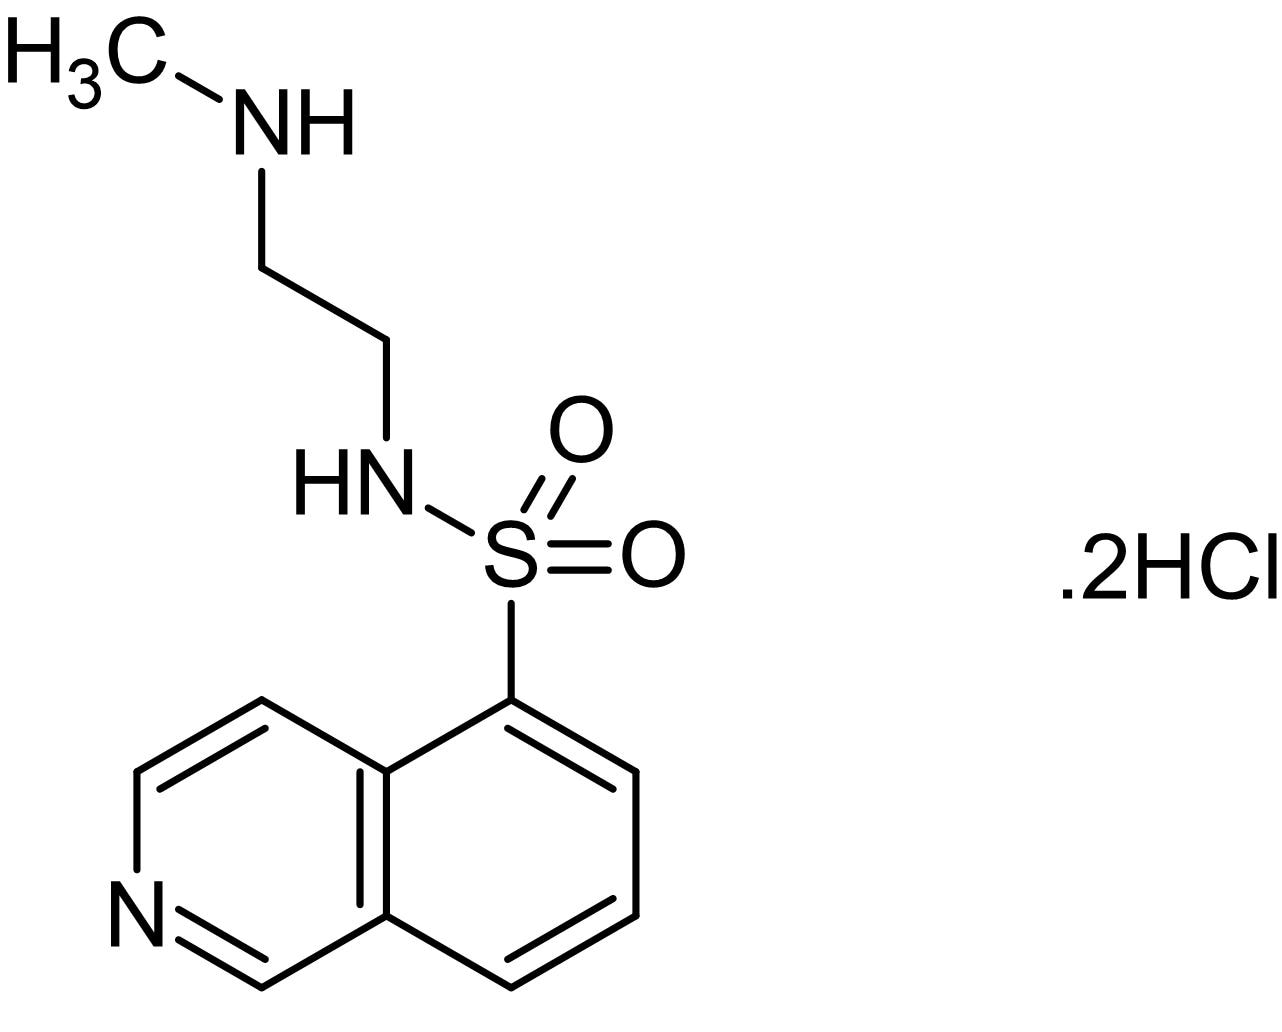 Chemical Structure - H8 dihydrochloride, cGMP and cAMP-dependent kinases inhibitor (ab142309)